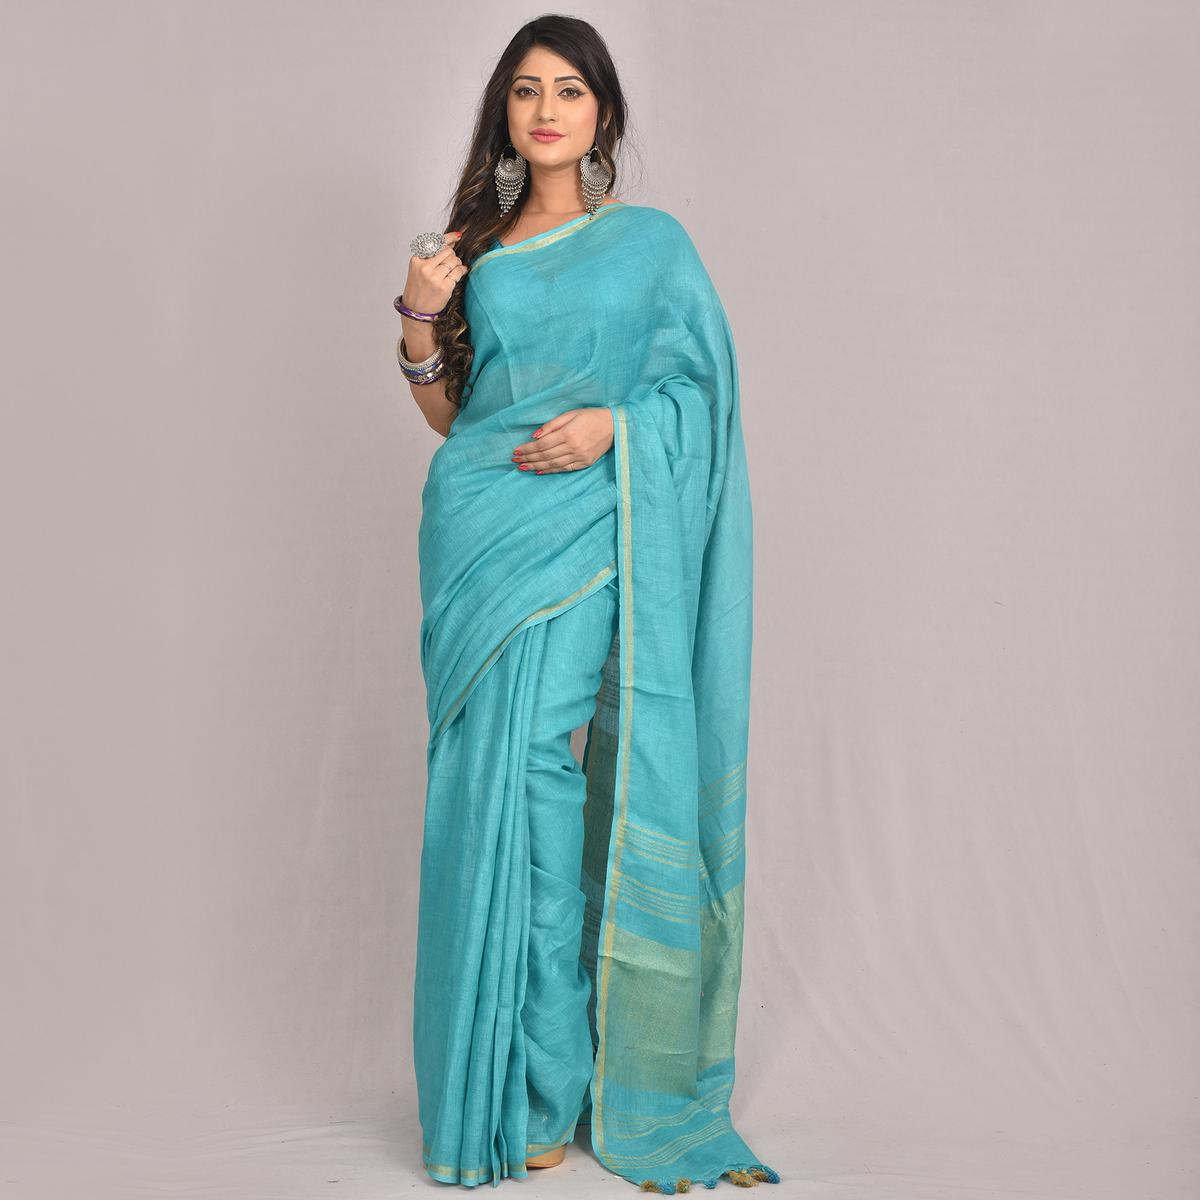 Kihums - Turquoise Hand Woven Linen Saree With Blouse Piece